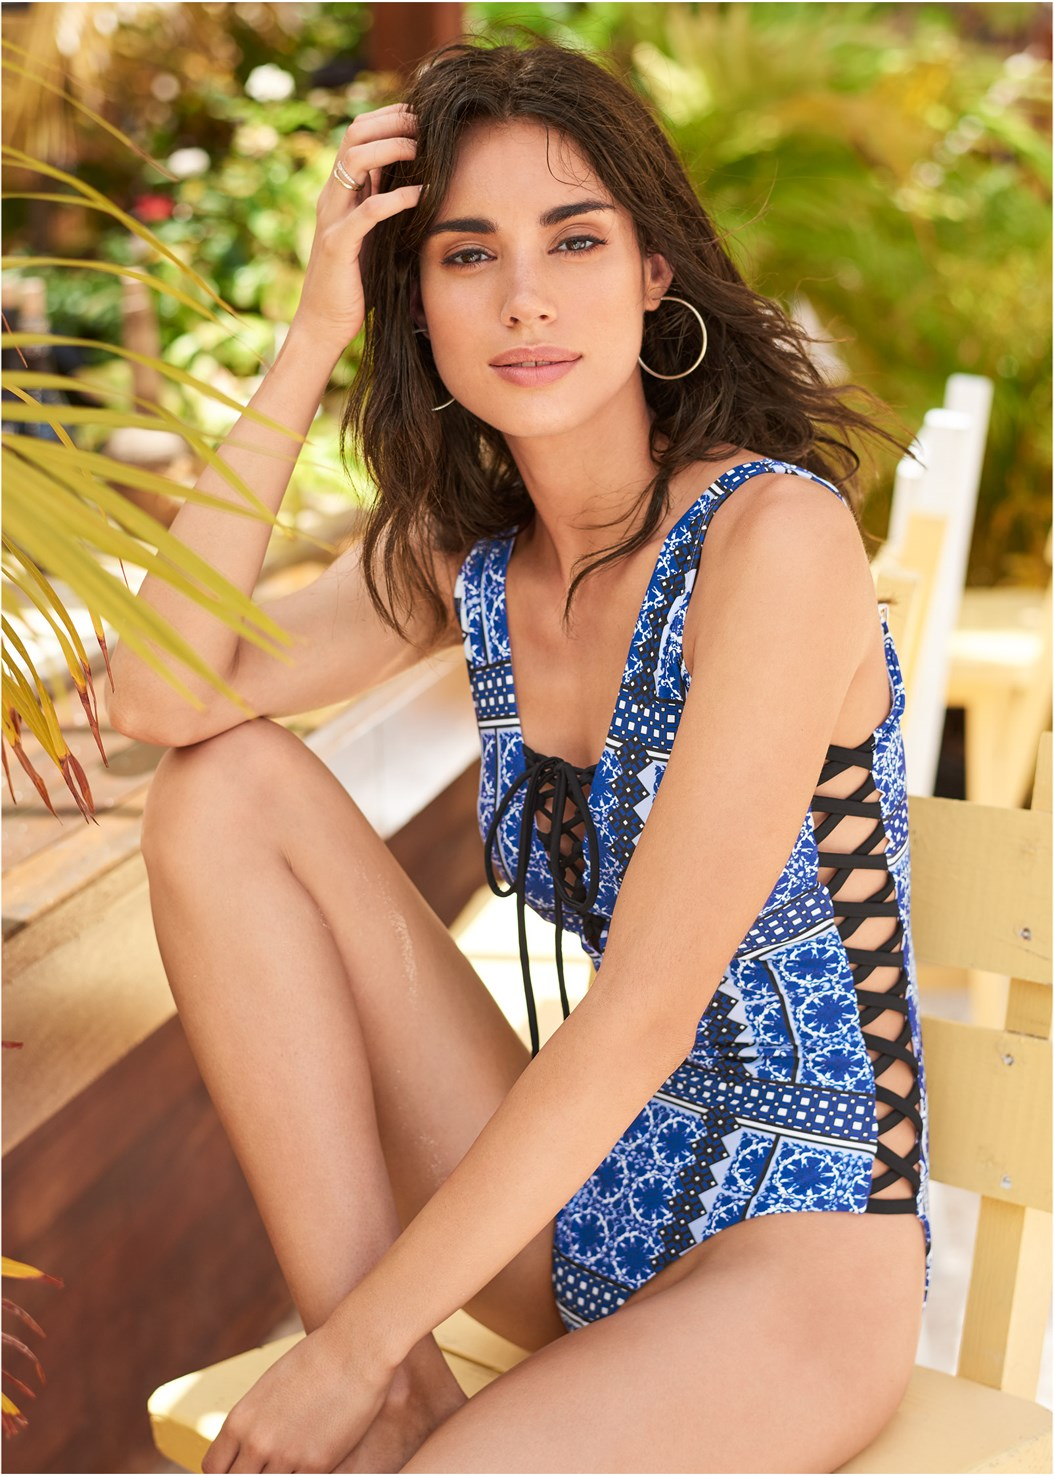 Poolside One-Piece,Lace Kimono Cover-Up,Denim Sandal